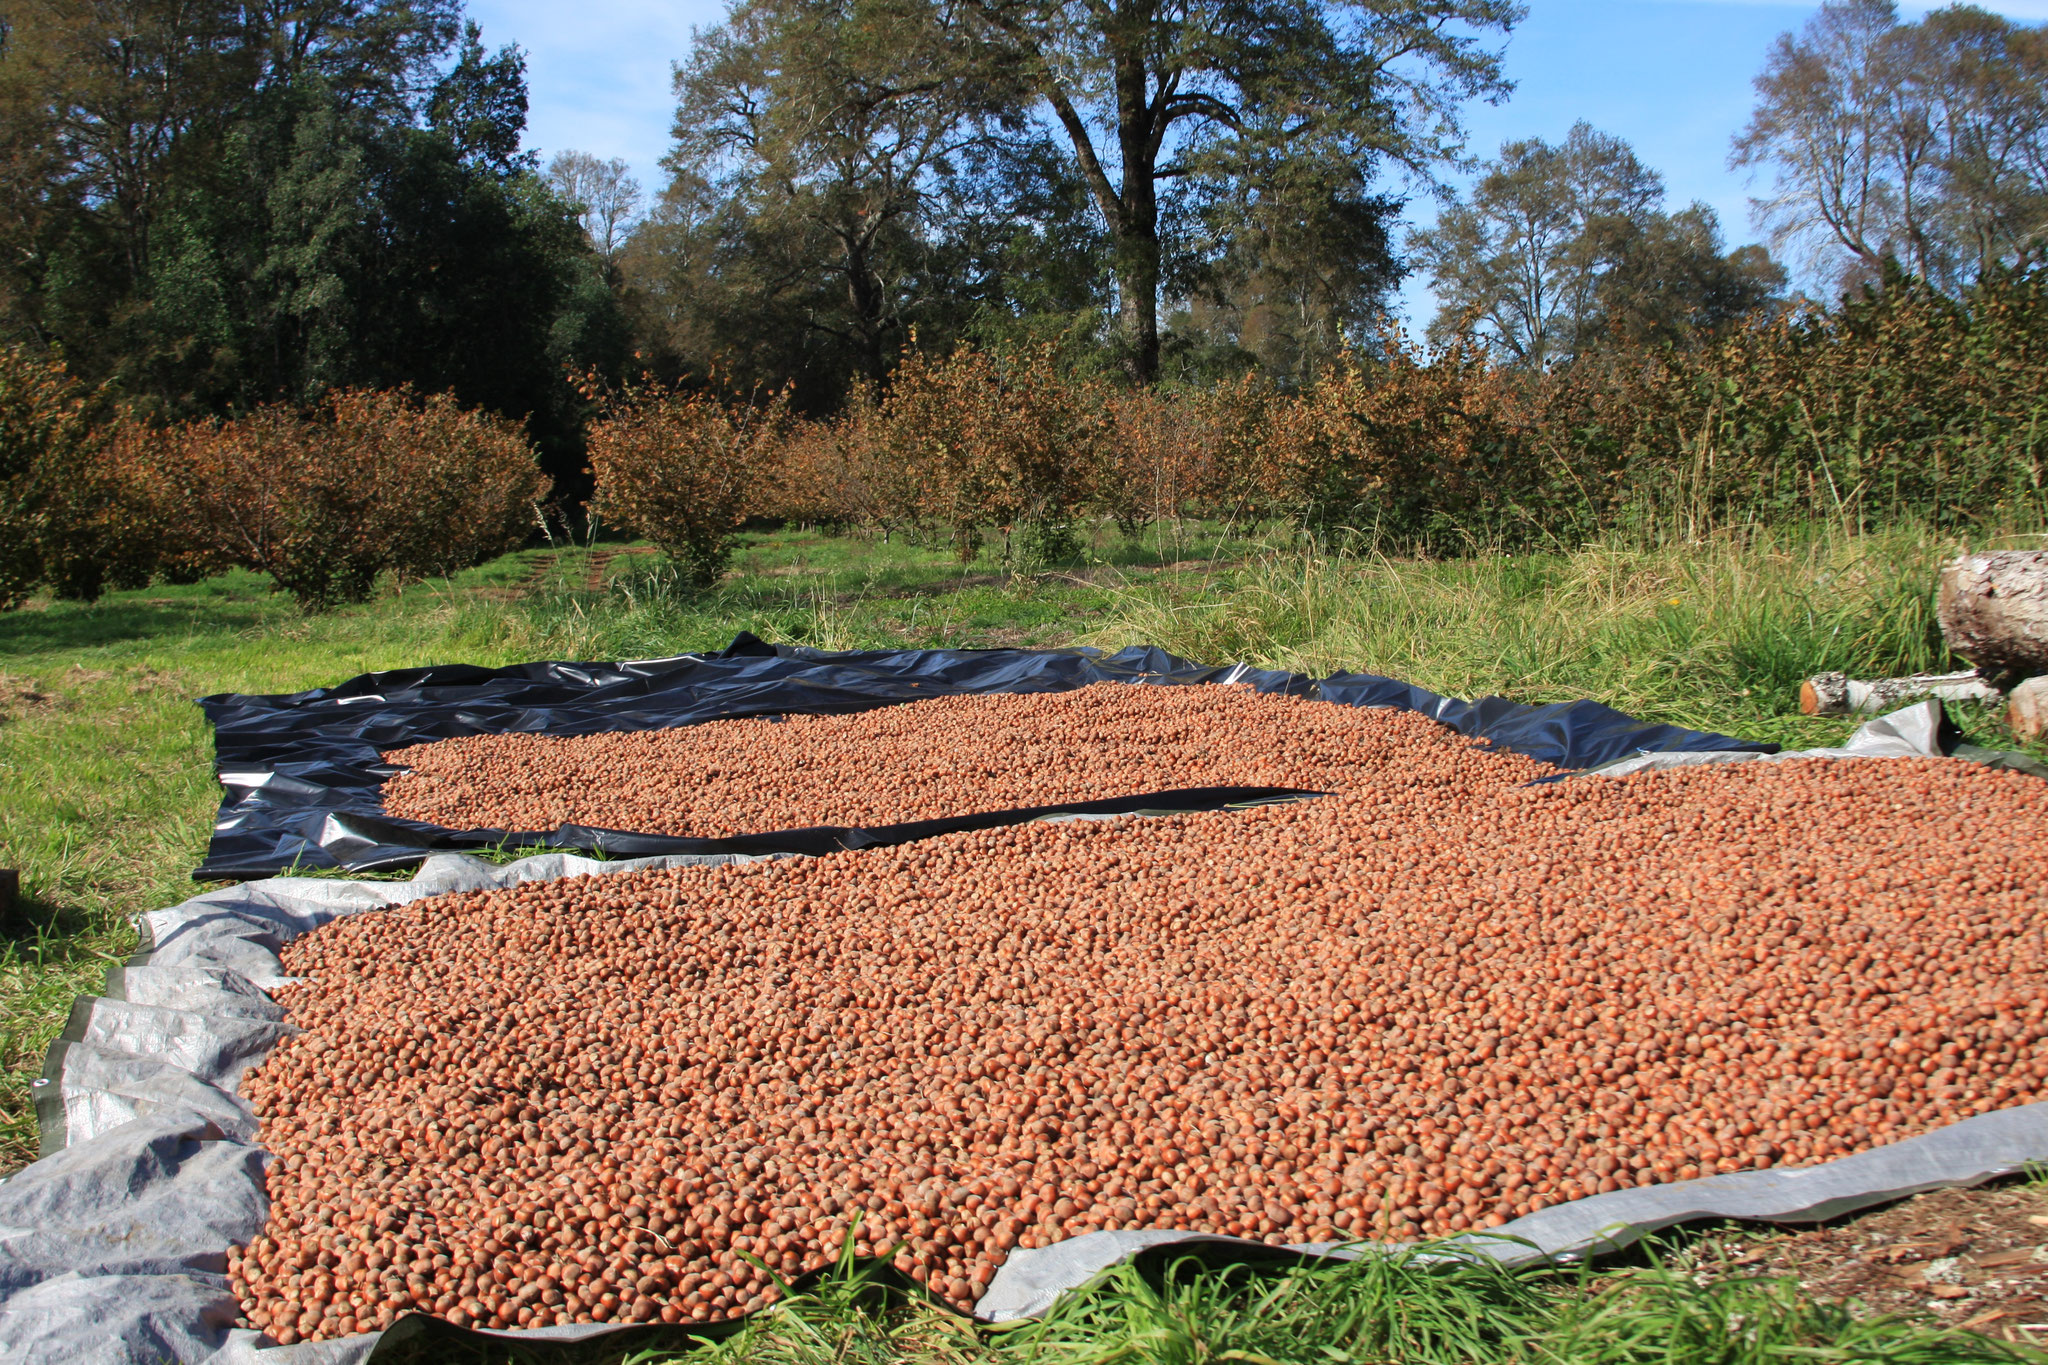 Drying Hazelnuts